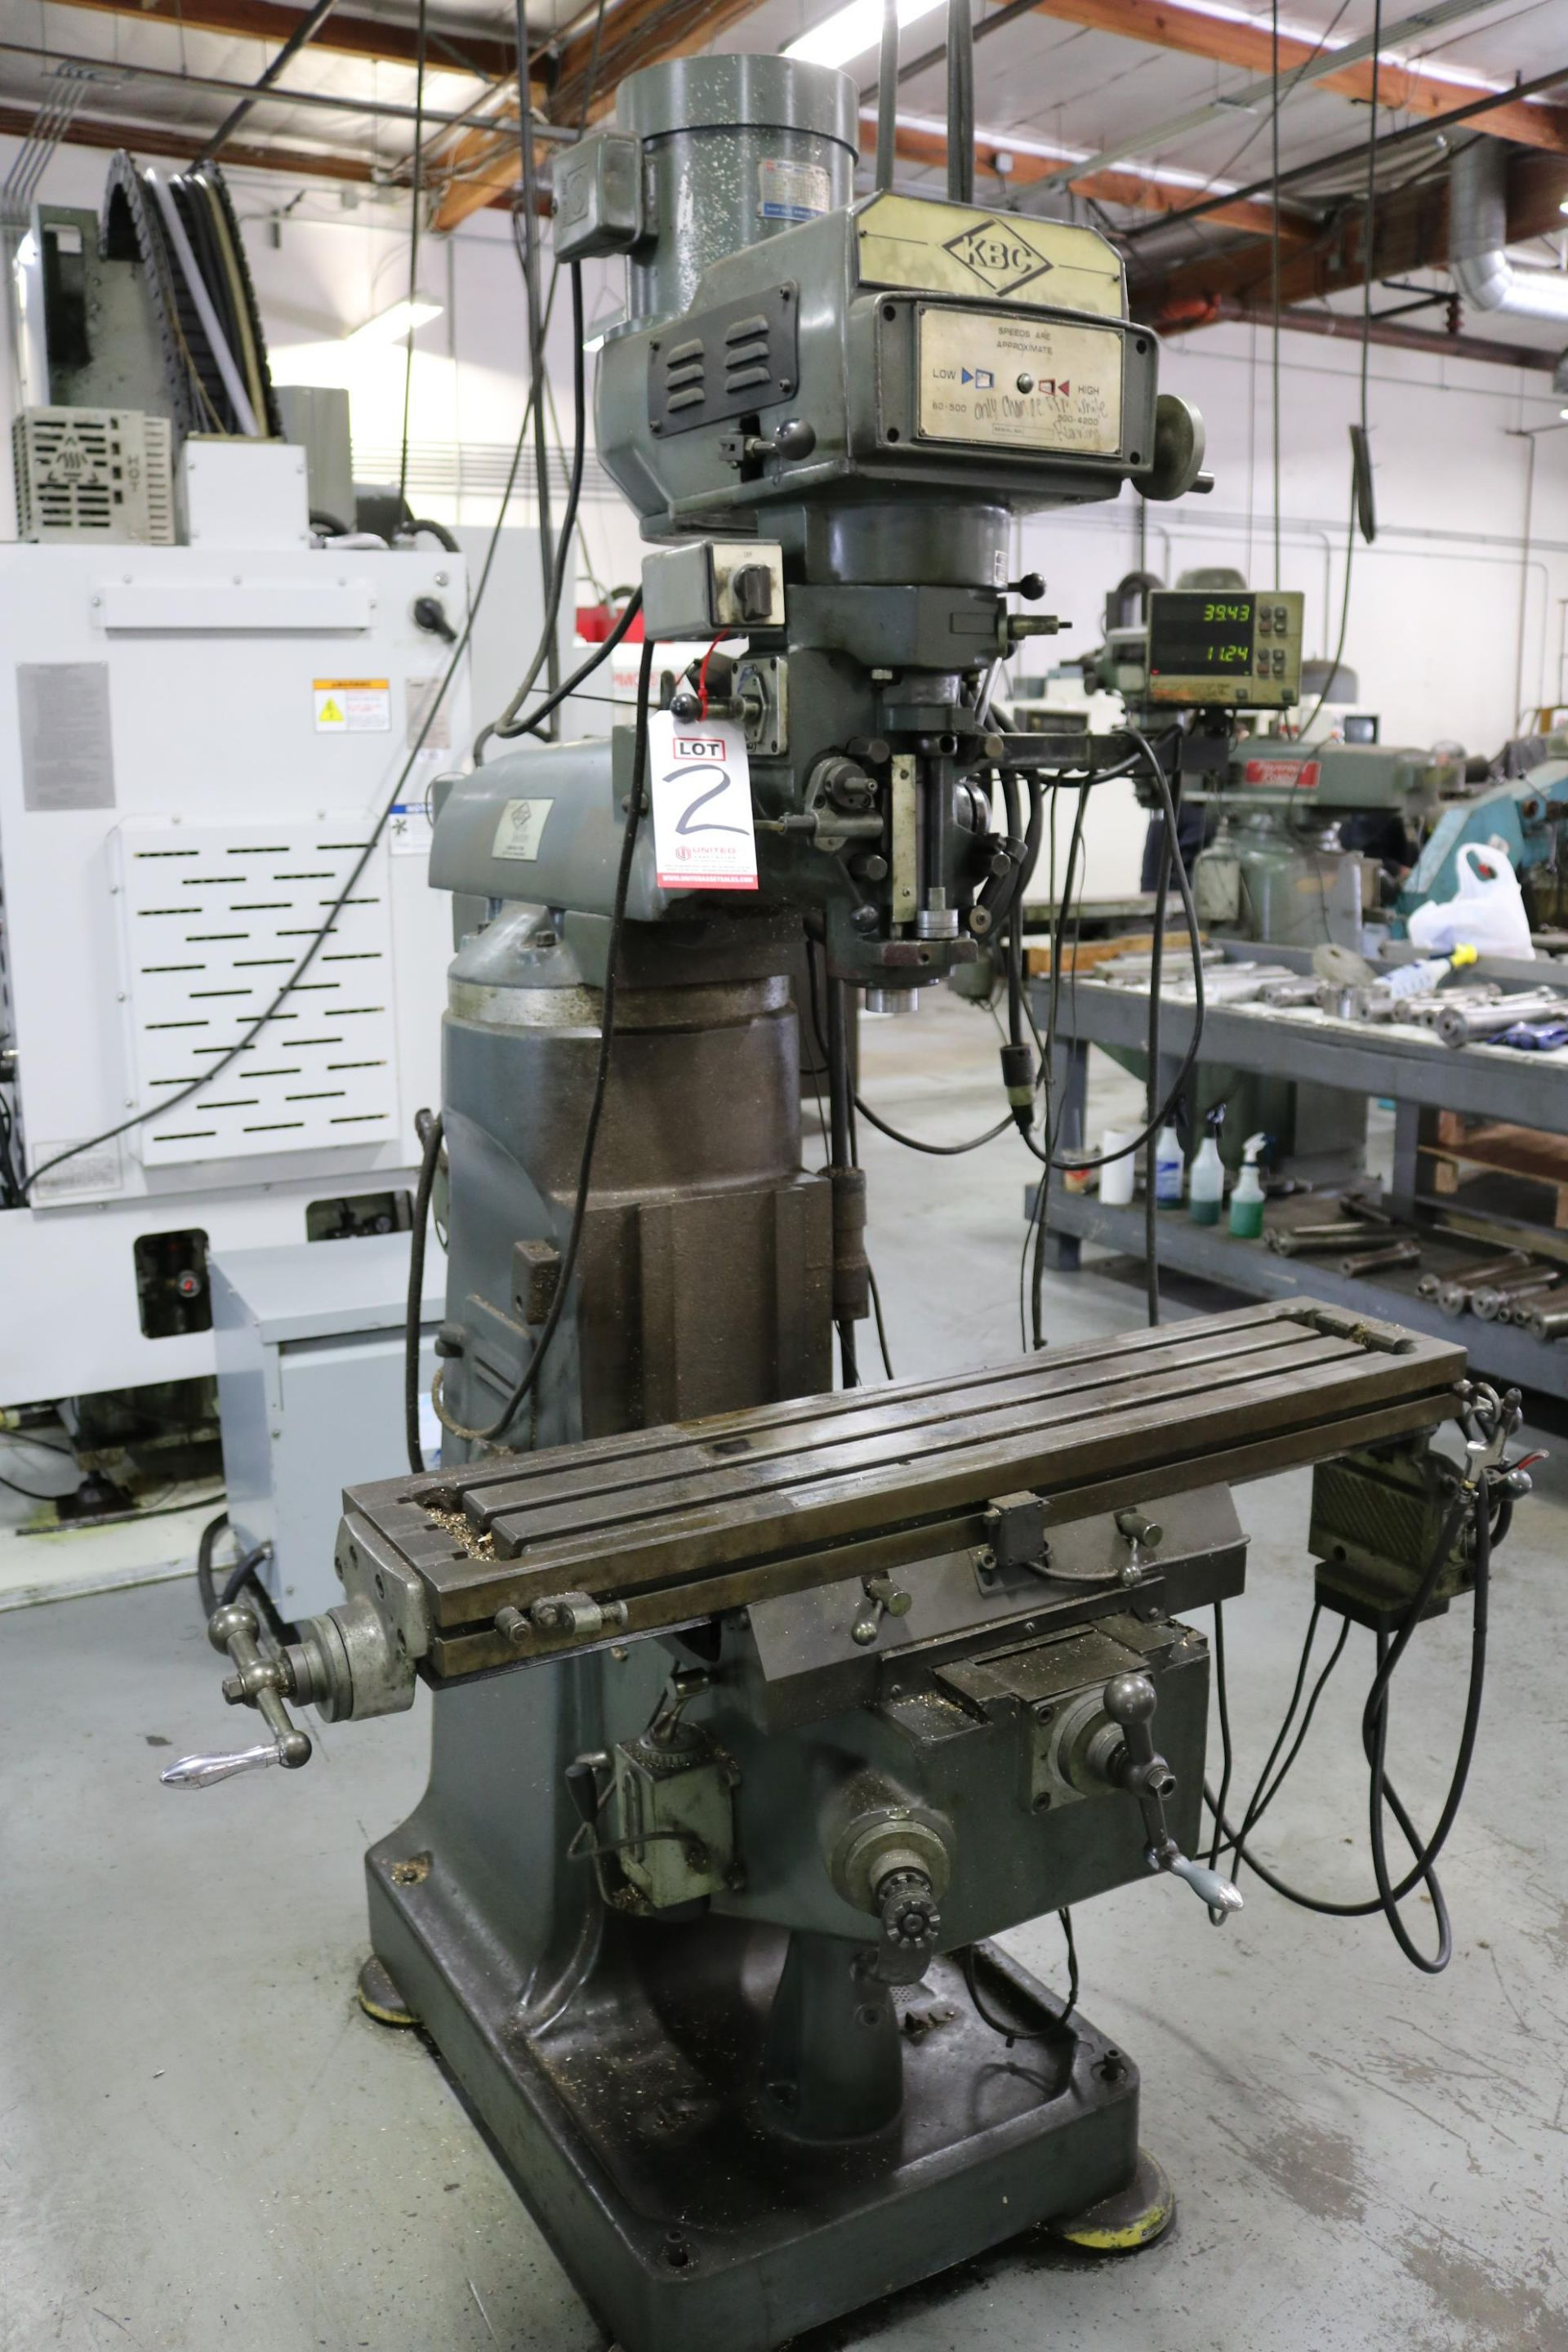 """Lot 2 - KBC VERTICAL MILL, 9"""" X 42"""" TABLE, POWER FEED, VARIABLE SPEED, 60-4200 RPM, MITUTOYO DRO"""